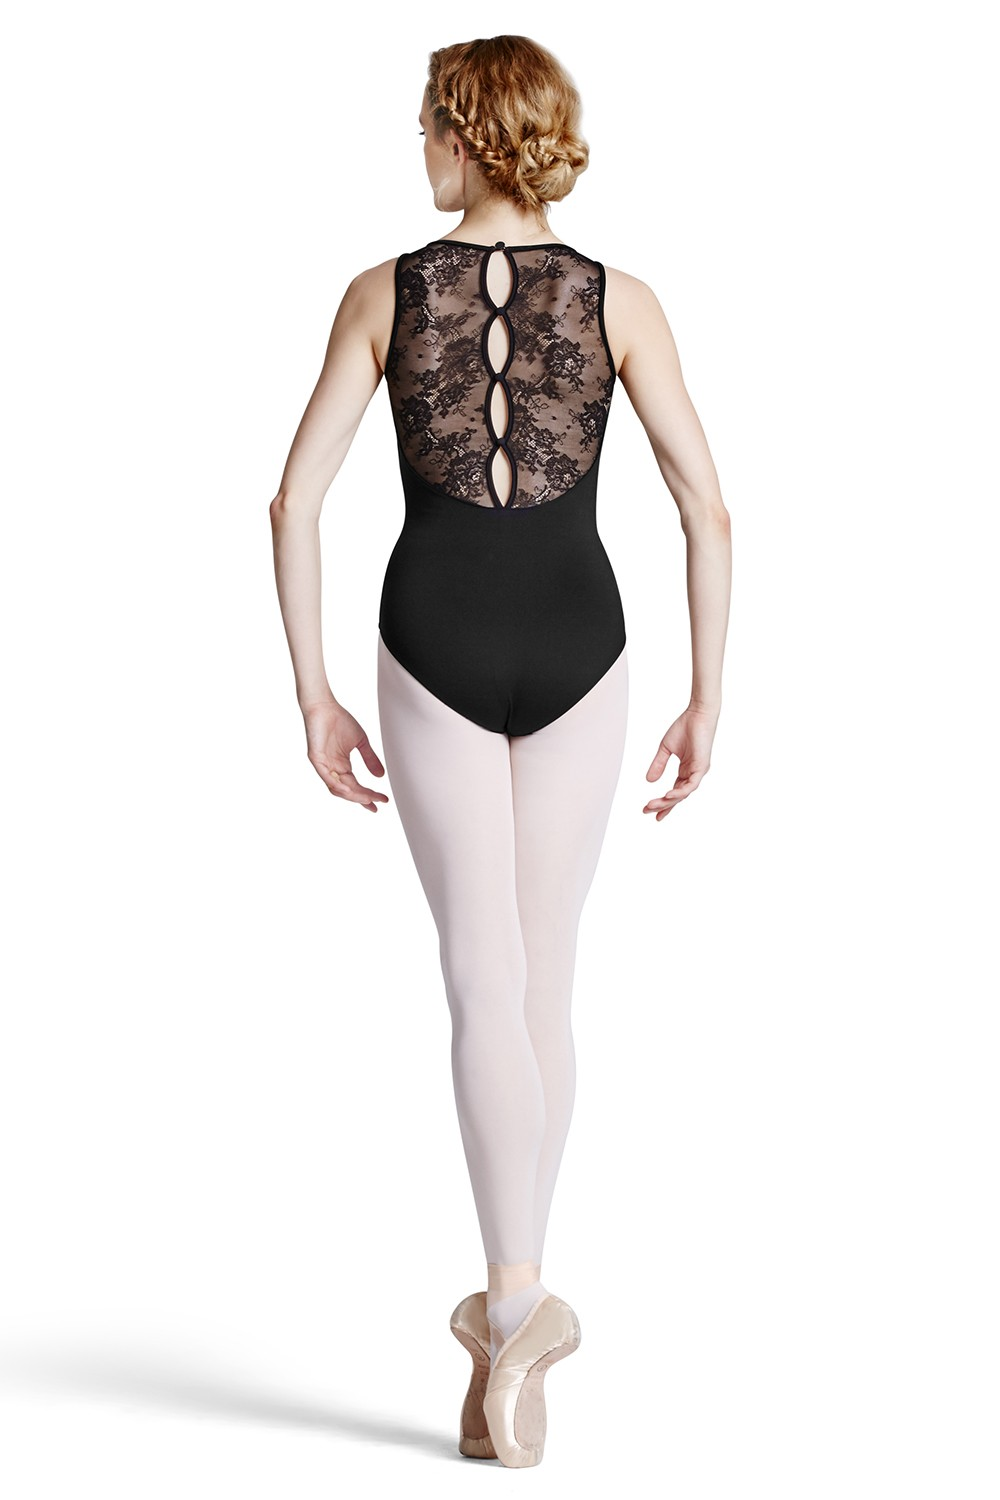 Fresia Women's Dance Leotards